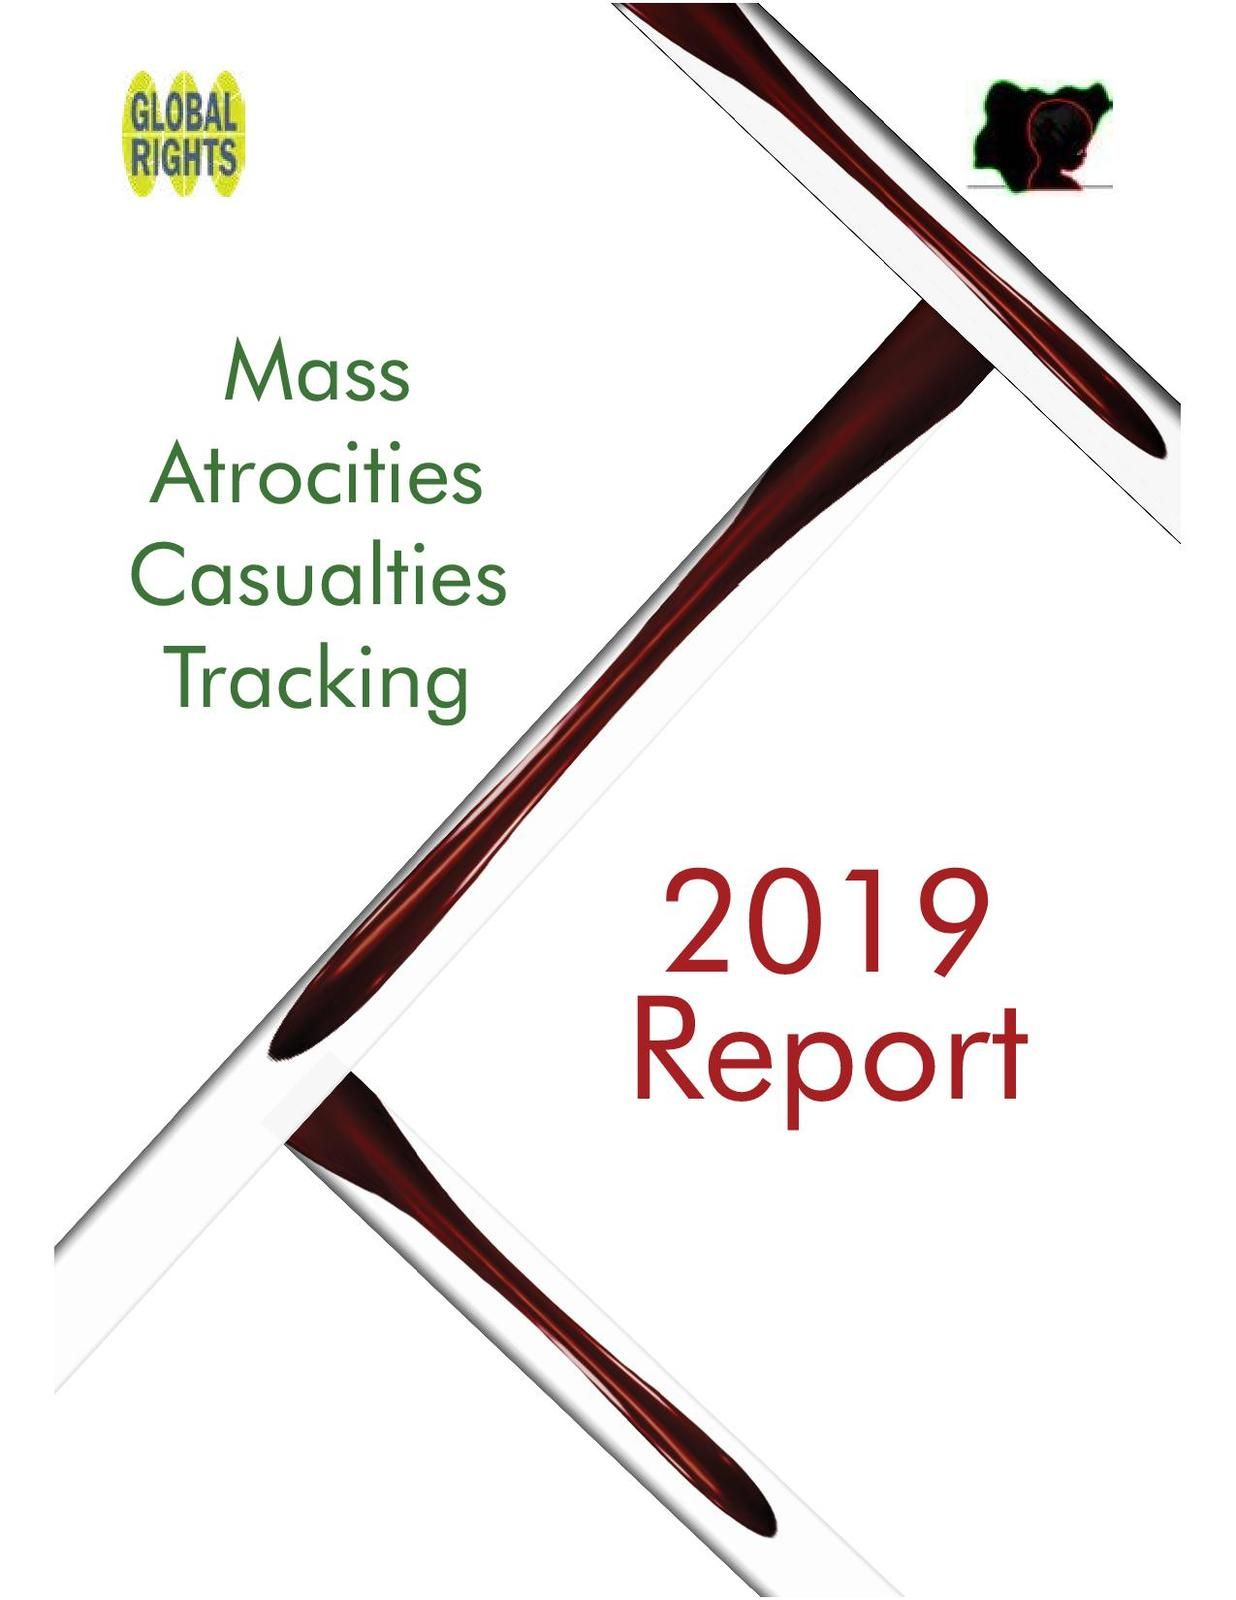 Mass Atrocities Casualties Tracking Report 2019